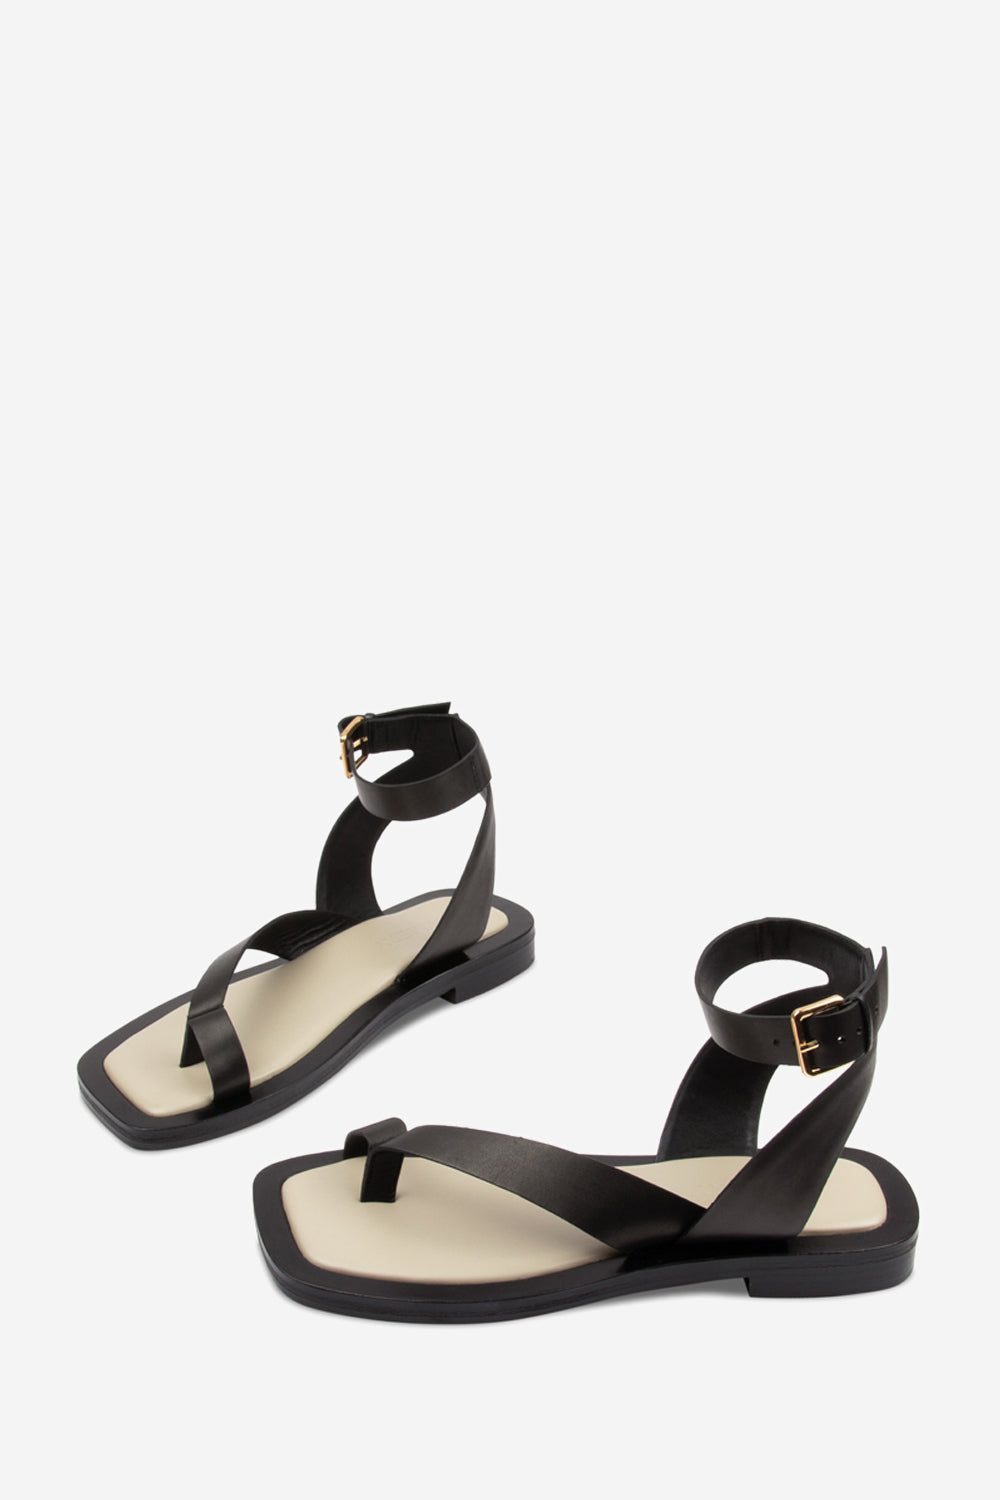 Asher Black Sandal